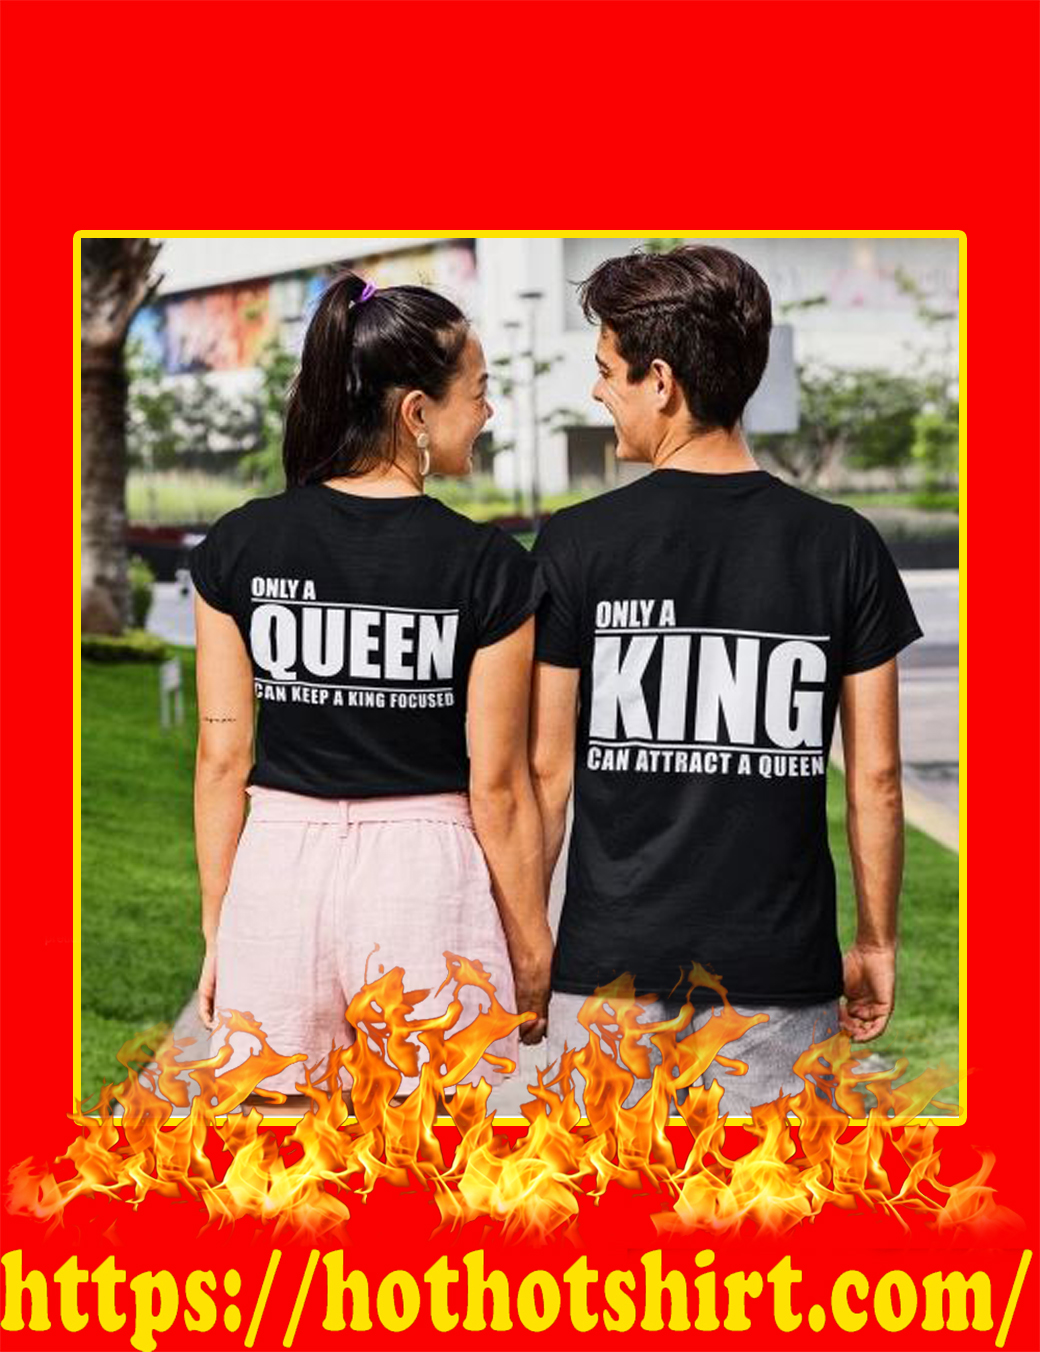 Only A Queen Can Keep A King Focused - Only A King Can Attract A Queen shirt